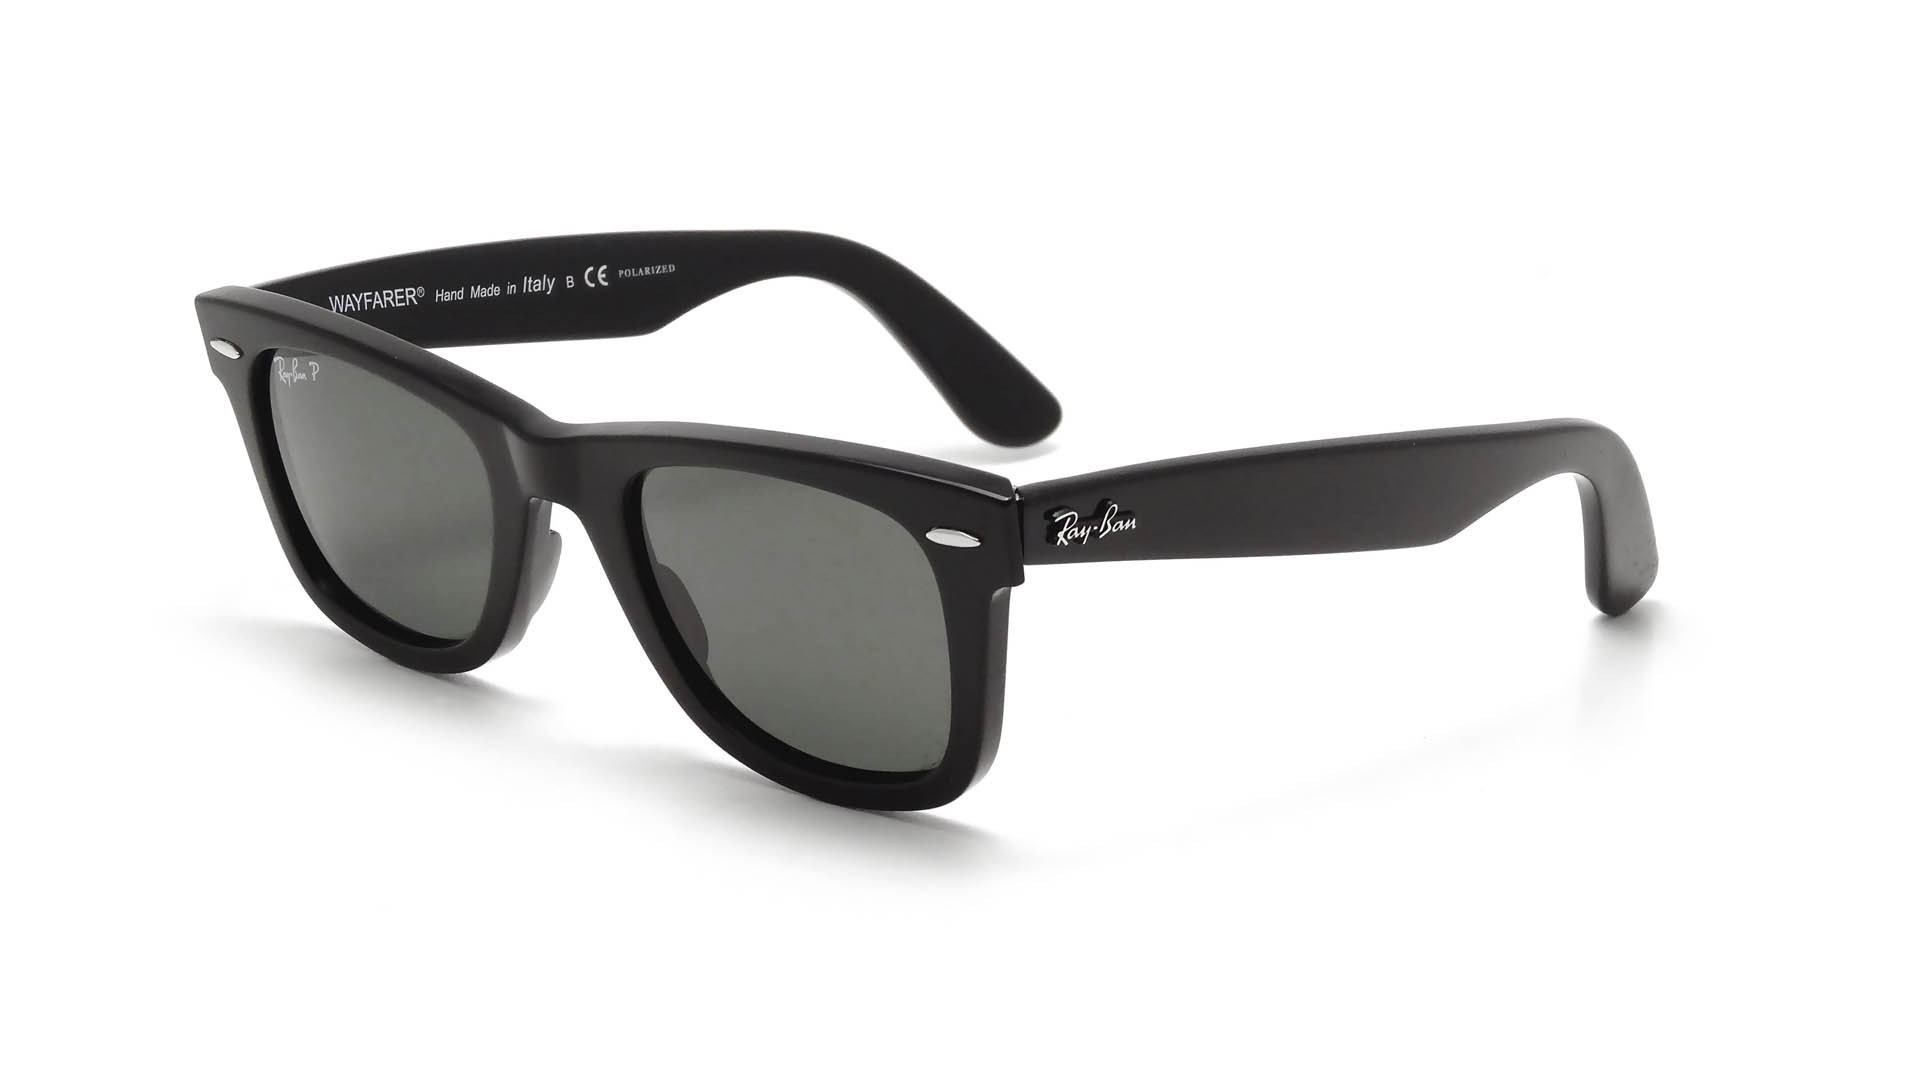 ray ban original wayfarer polarized cpwt  Ray-Ban Original Wayfarer Black RB2140 901/58 54-18 Polarized  Visiofactory